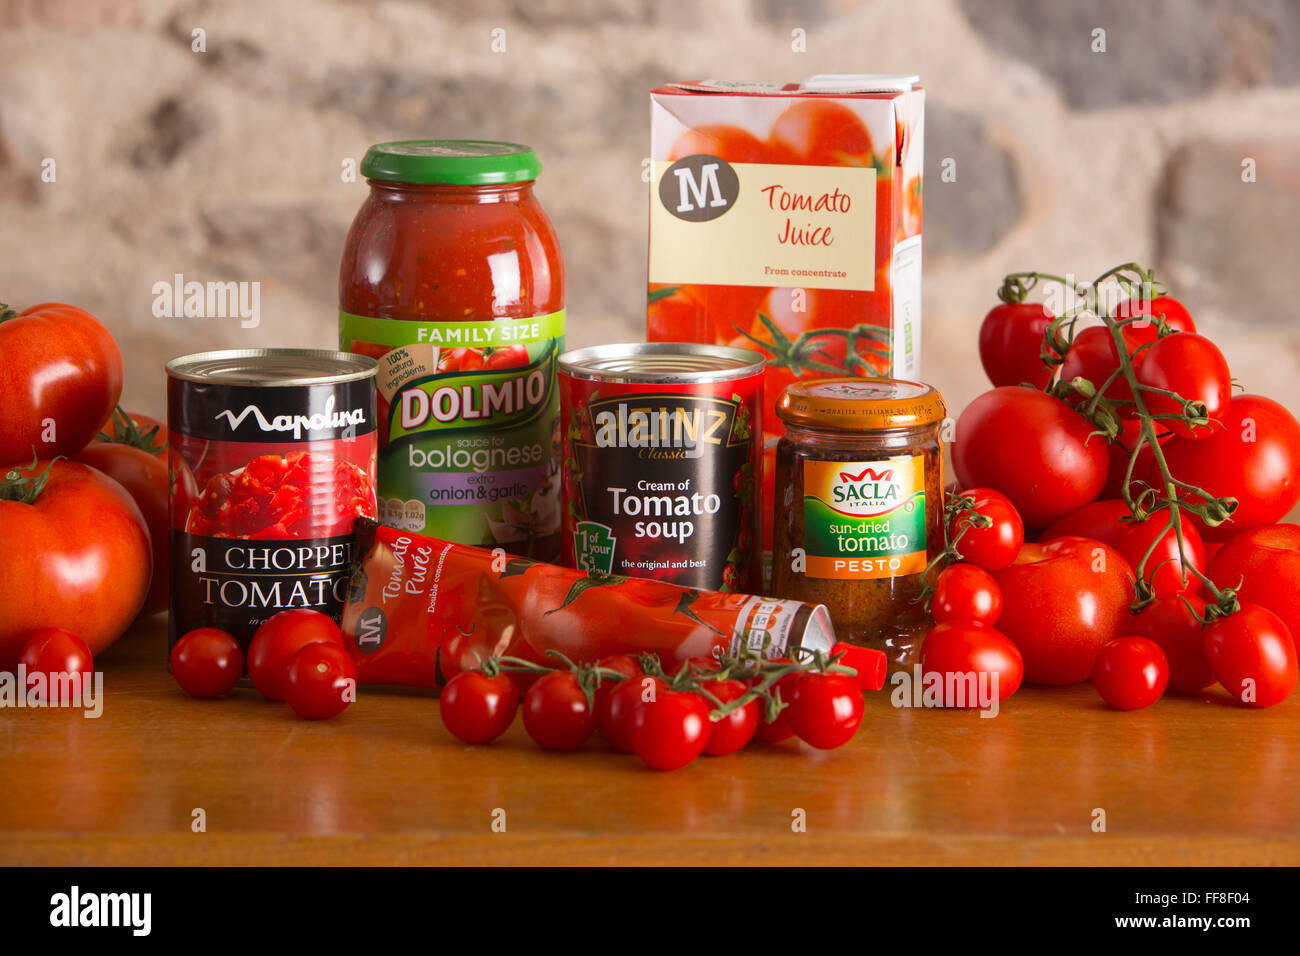 tomatoes and tomato products on a country kitchen table including soup, sauce, juice, puree and pesto - Stock Image